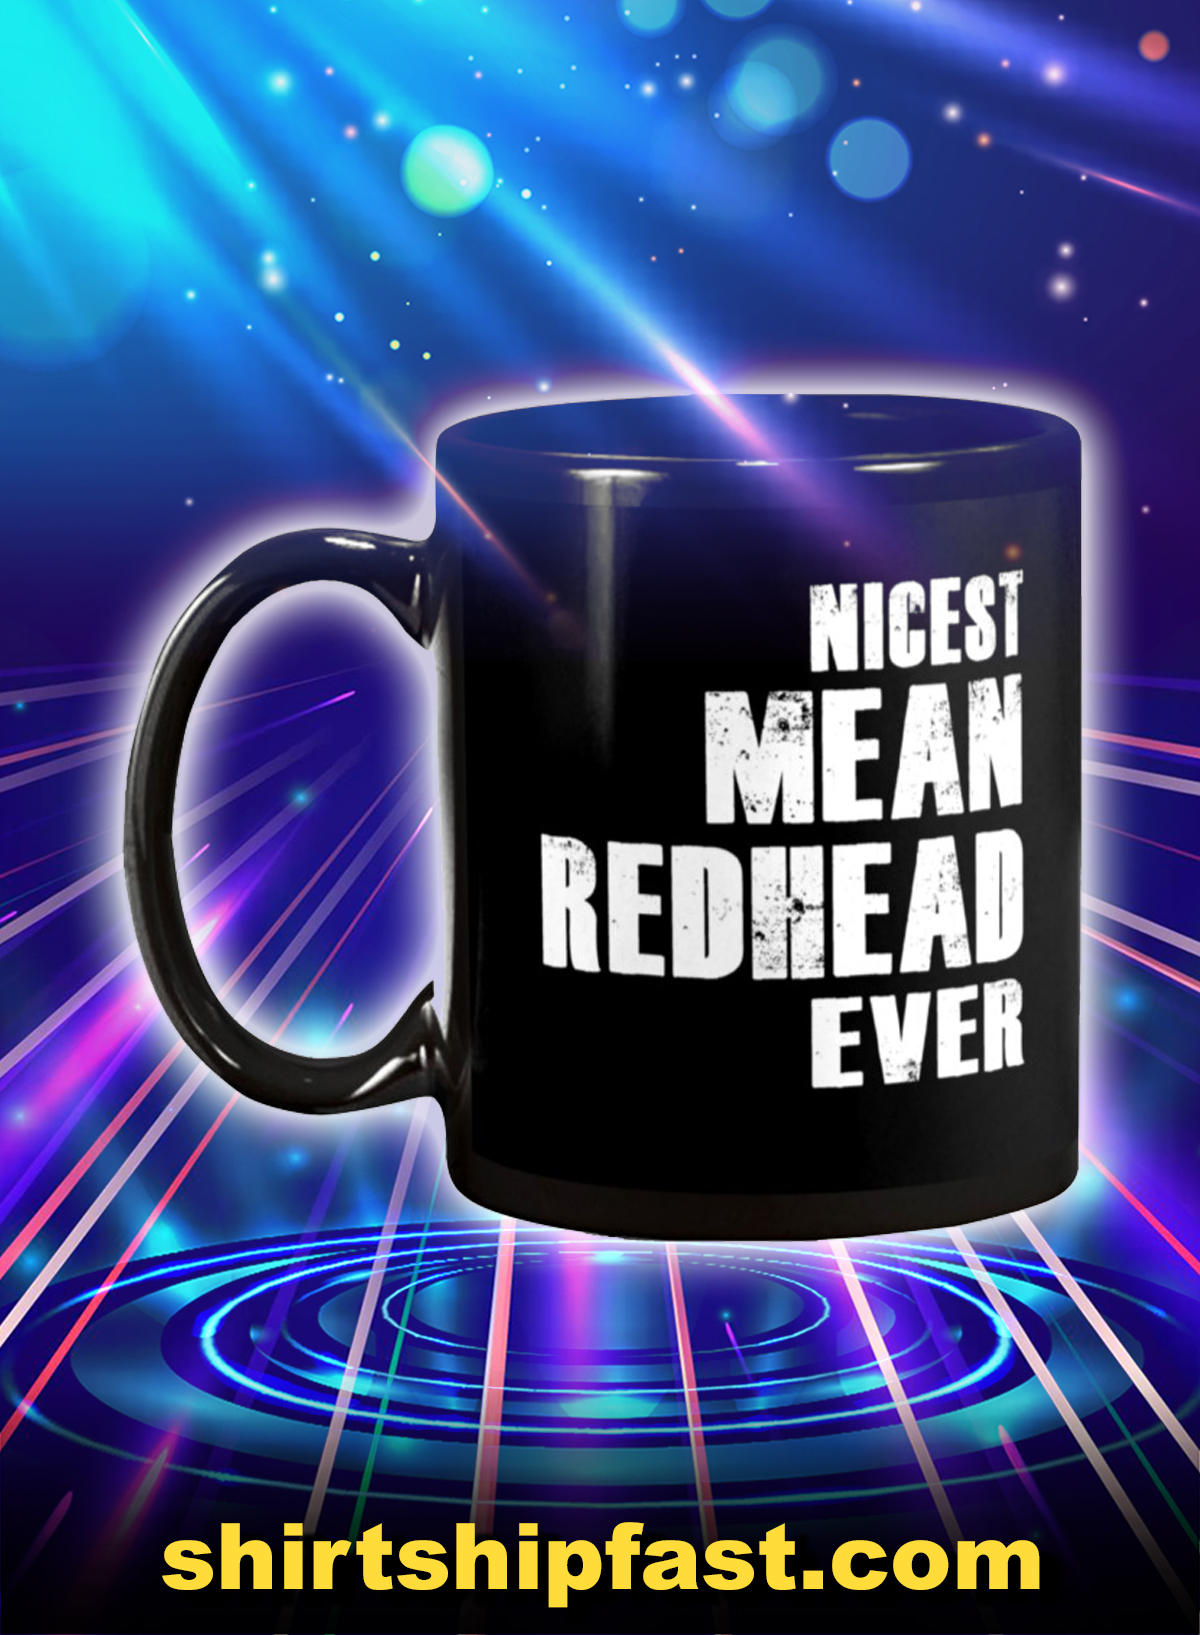 Nicest mean redhead ever mug - Picture 1